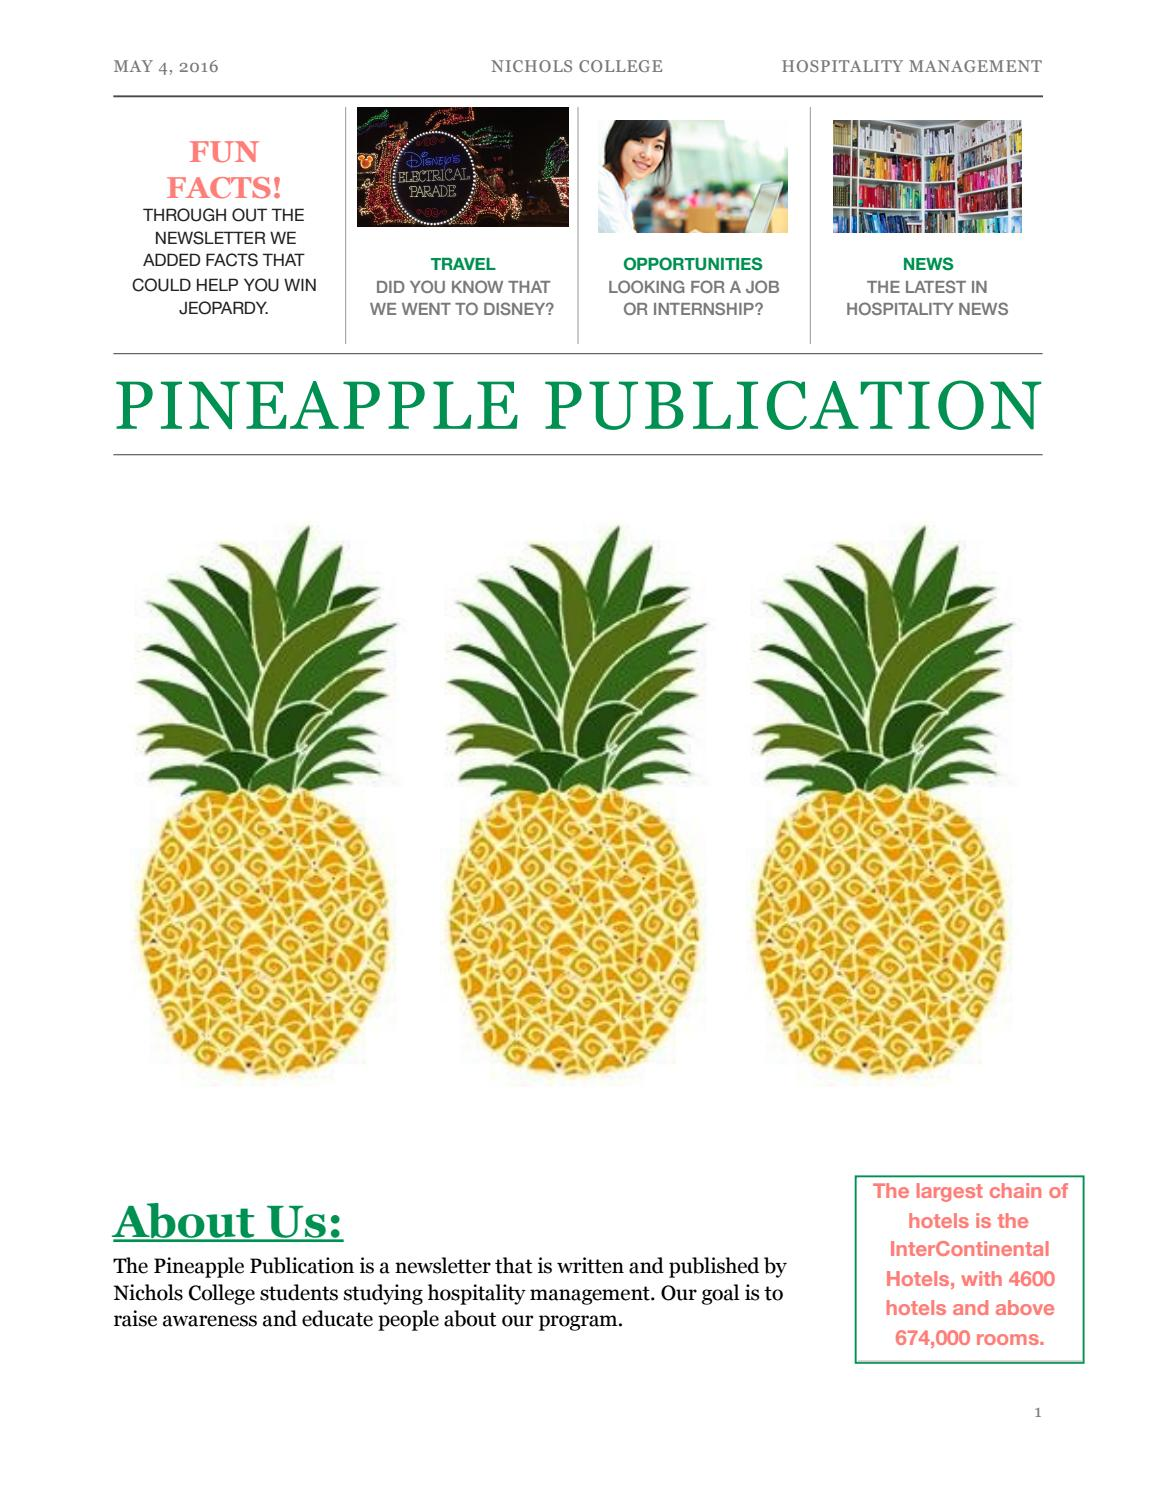 Pineapple Publication Newsletter TEMPLATE by Emma Murphy - issuu